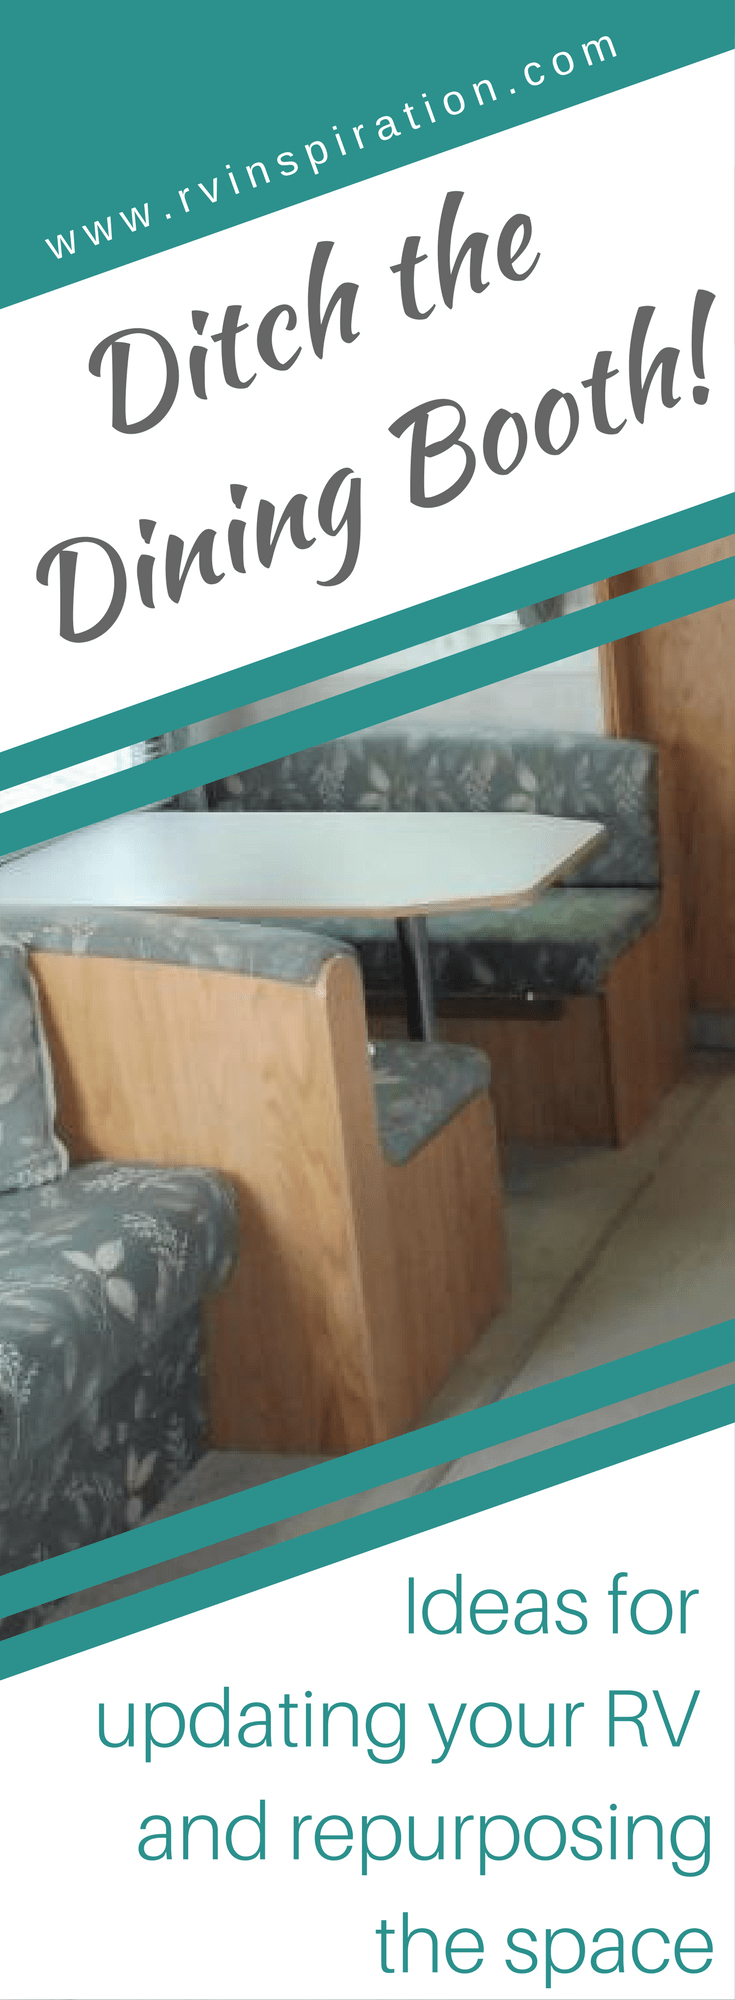 RV Owners Who Replaced Their Dining Booth | RV Inspiration